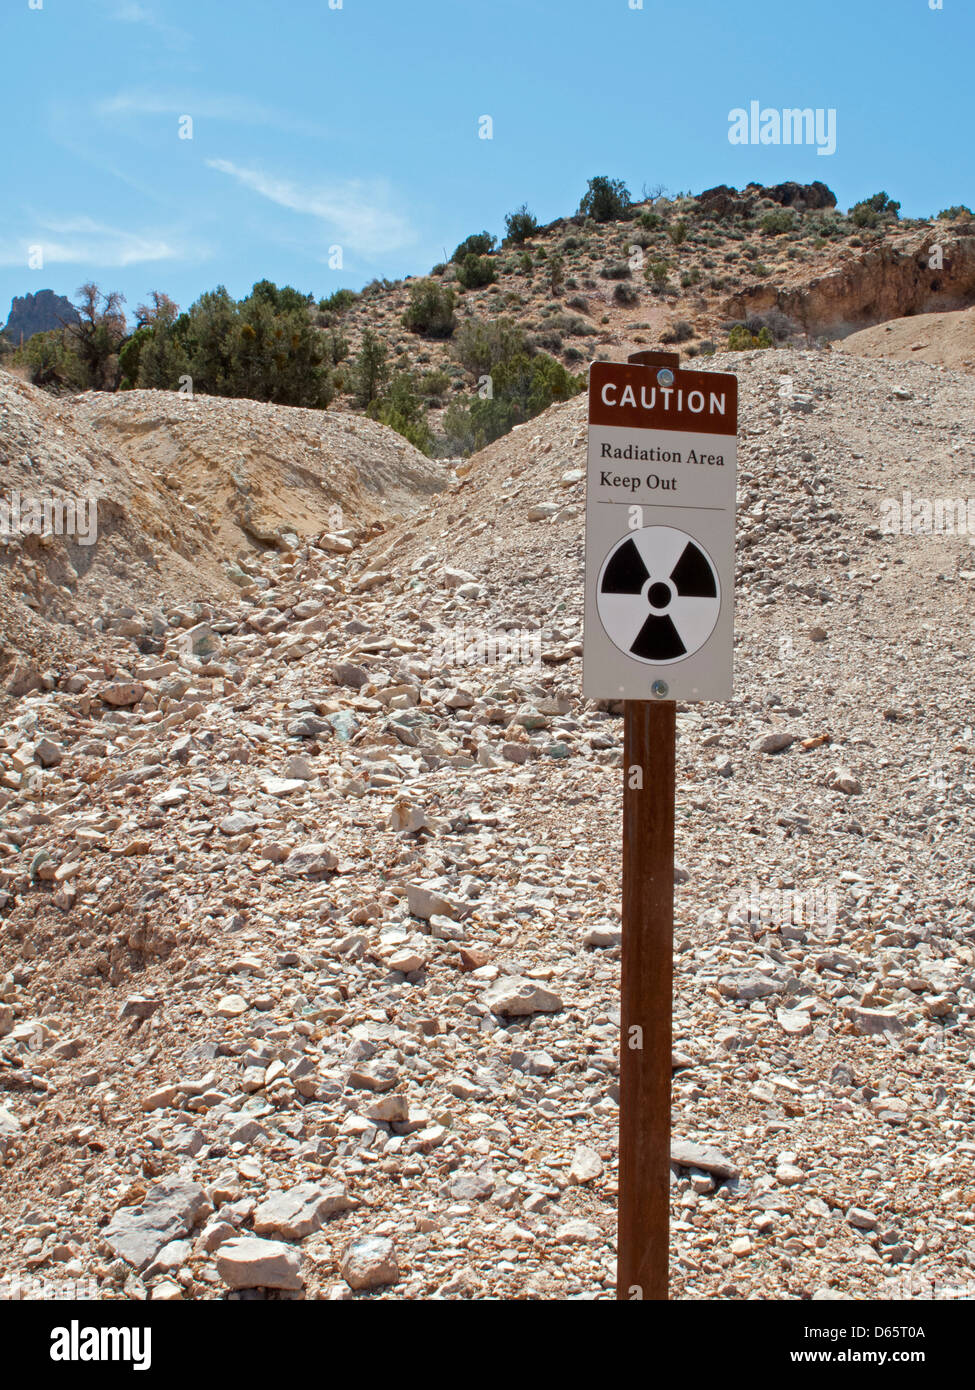 Grand Canyon National Park, Arizona - A sign warns hikers away from an old mine on Horseshoe Mesa due to radiation - Stock Image